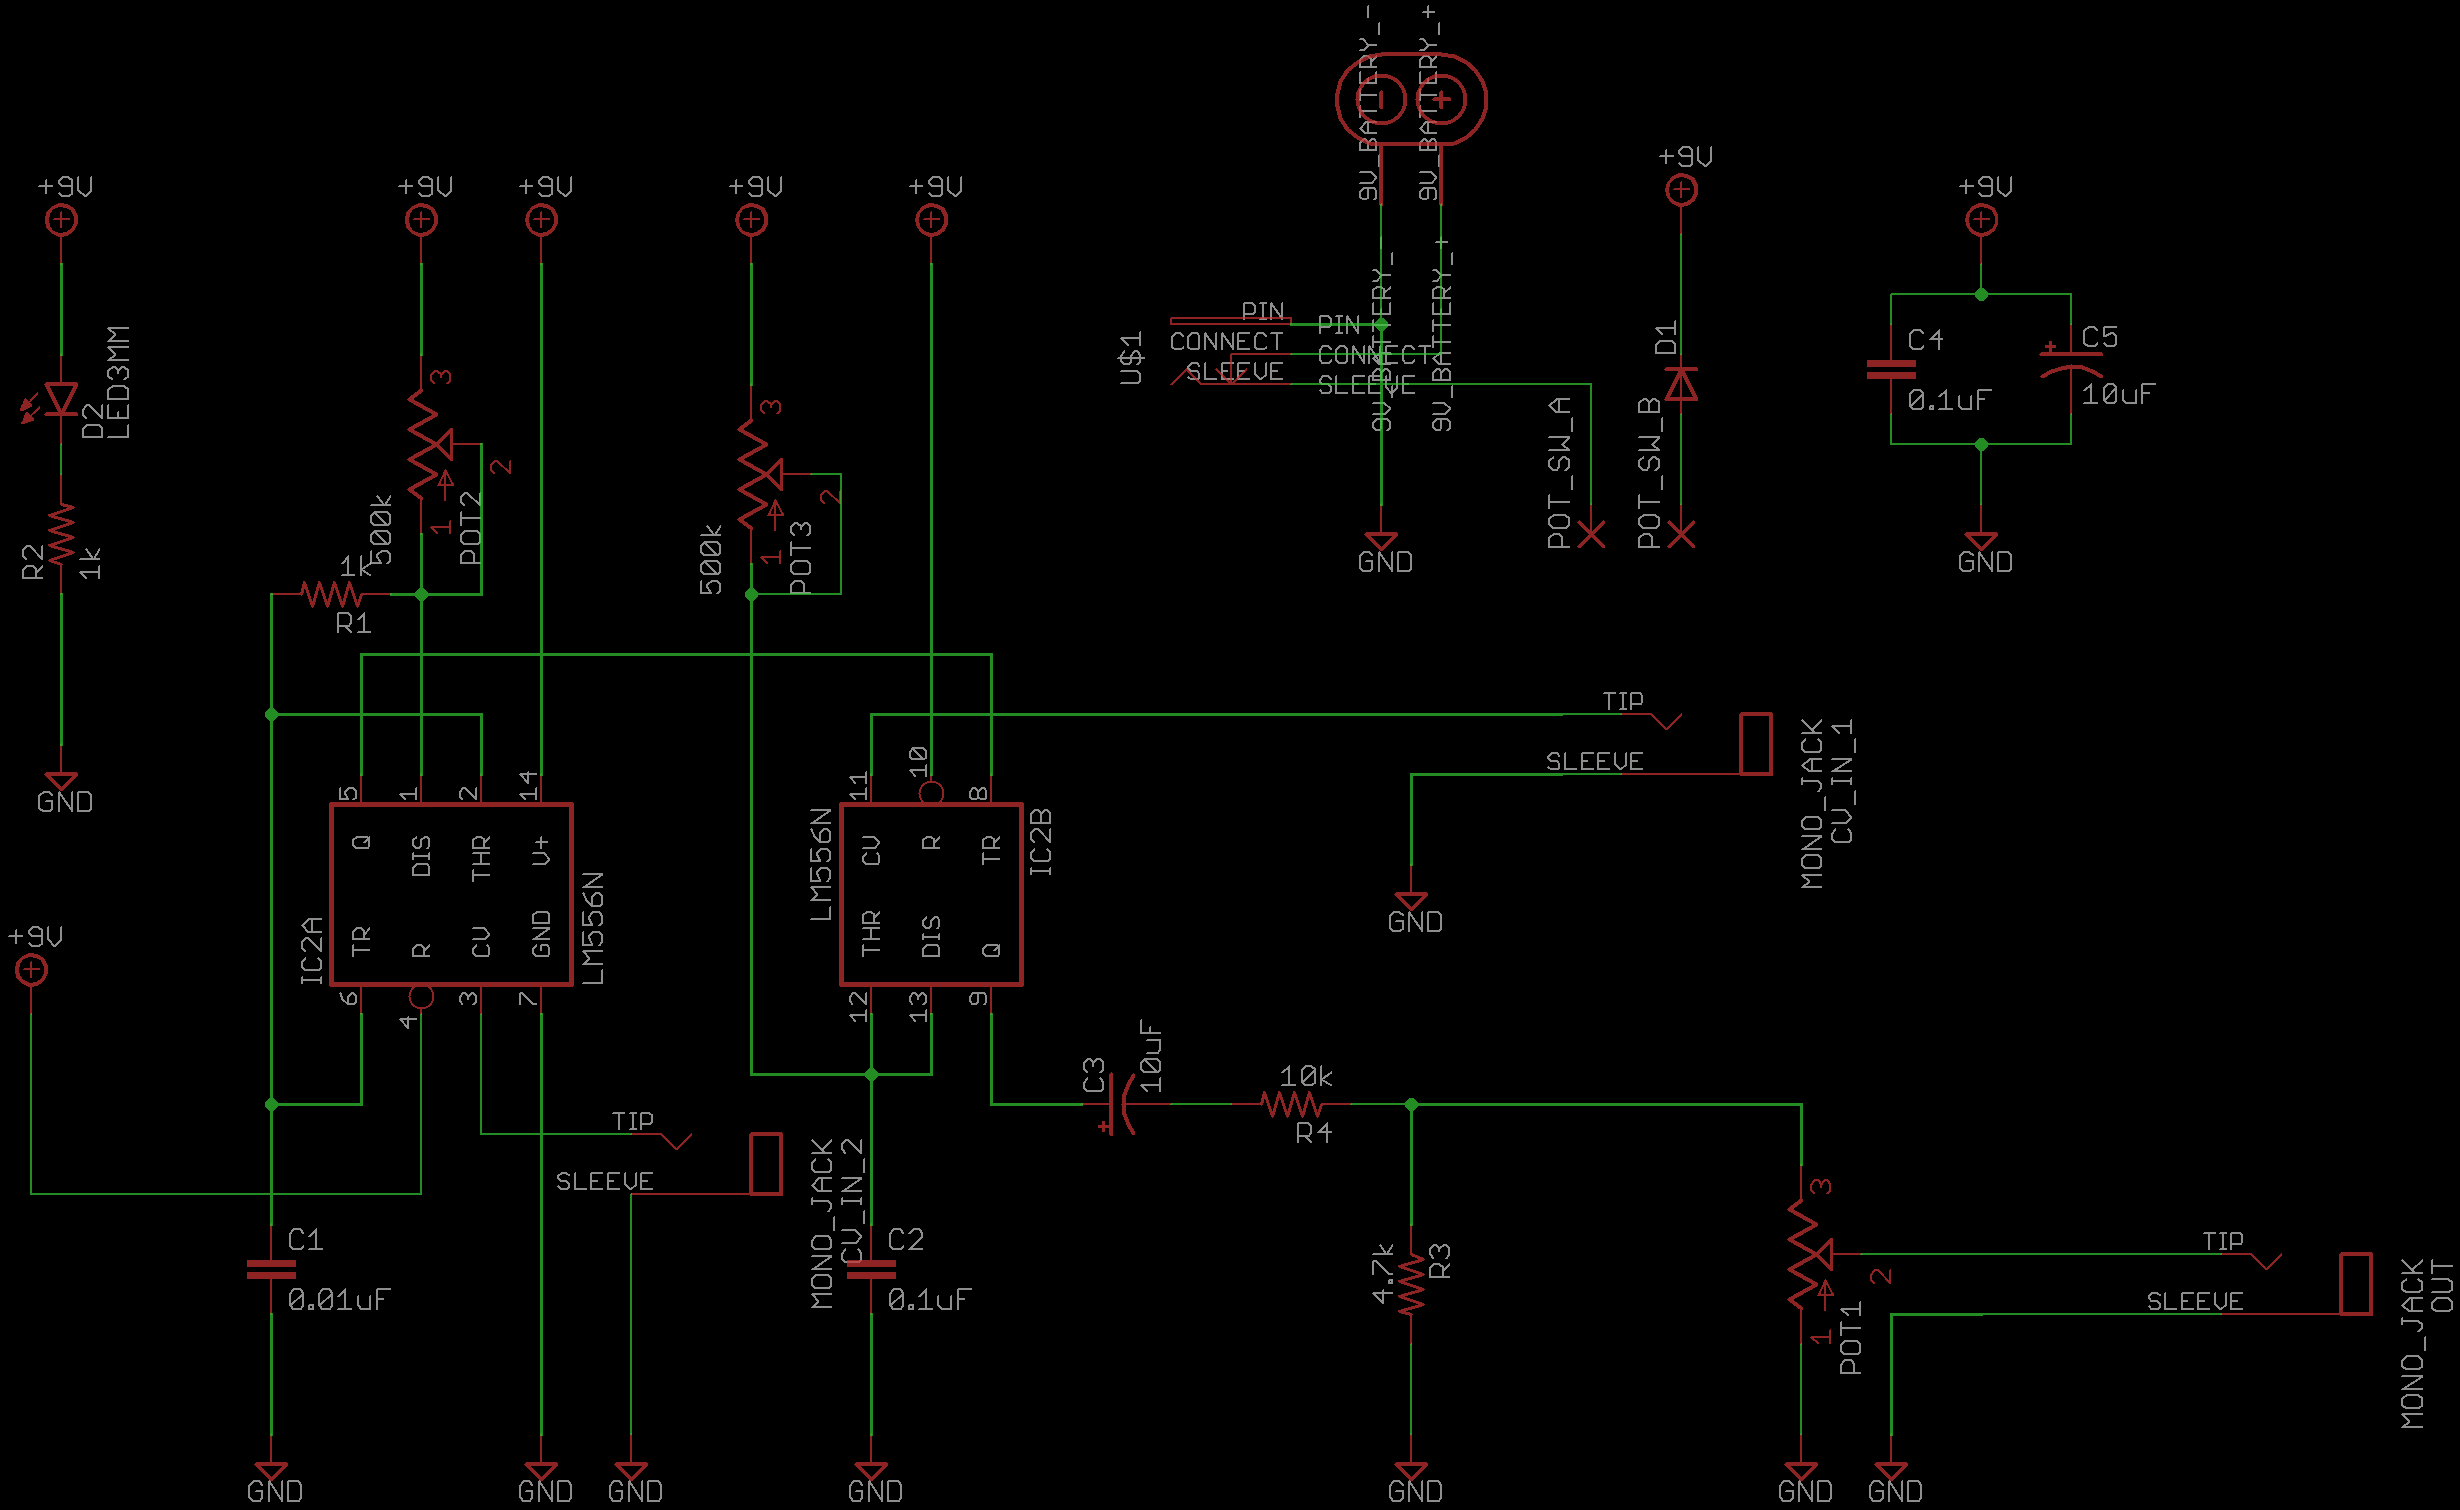 Old Atari Wiring Diagram | Wiring Liry on nes wiring diagram, xbox 360 wiring diagram, ps2 wiring diagram,